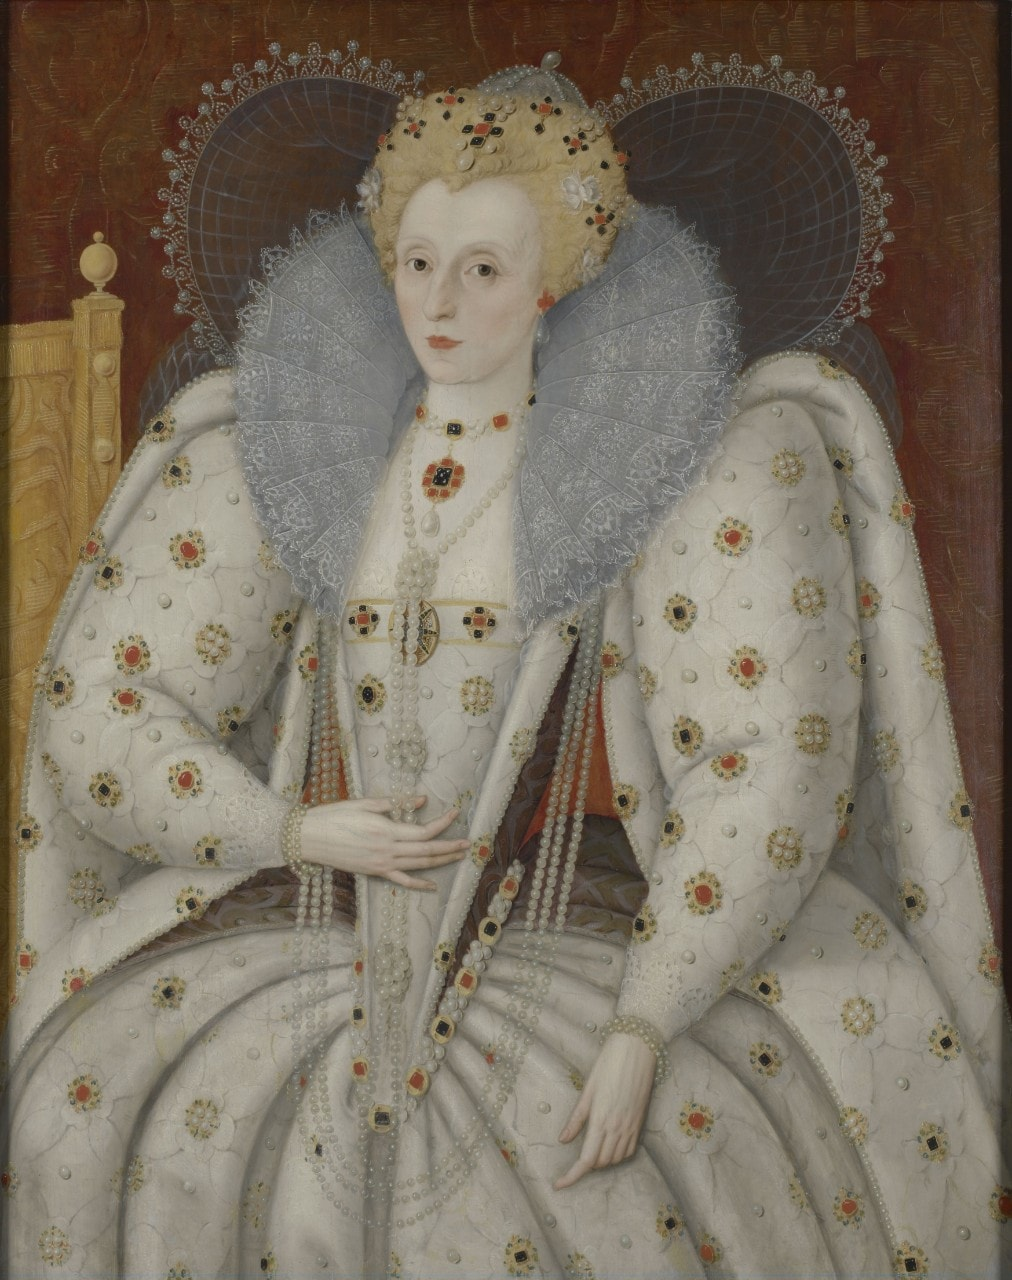 Elizabeth I of England could be seen as the real-life Daenerys Targaryen. Image: Marcus Gheeraerts the Younger/Wikimedia Commons.